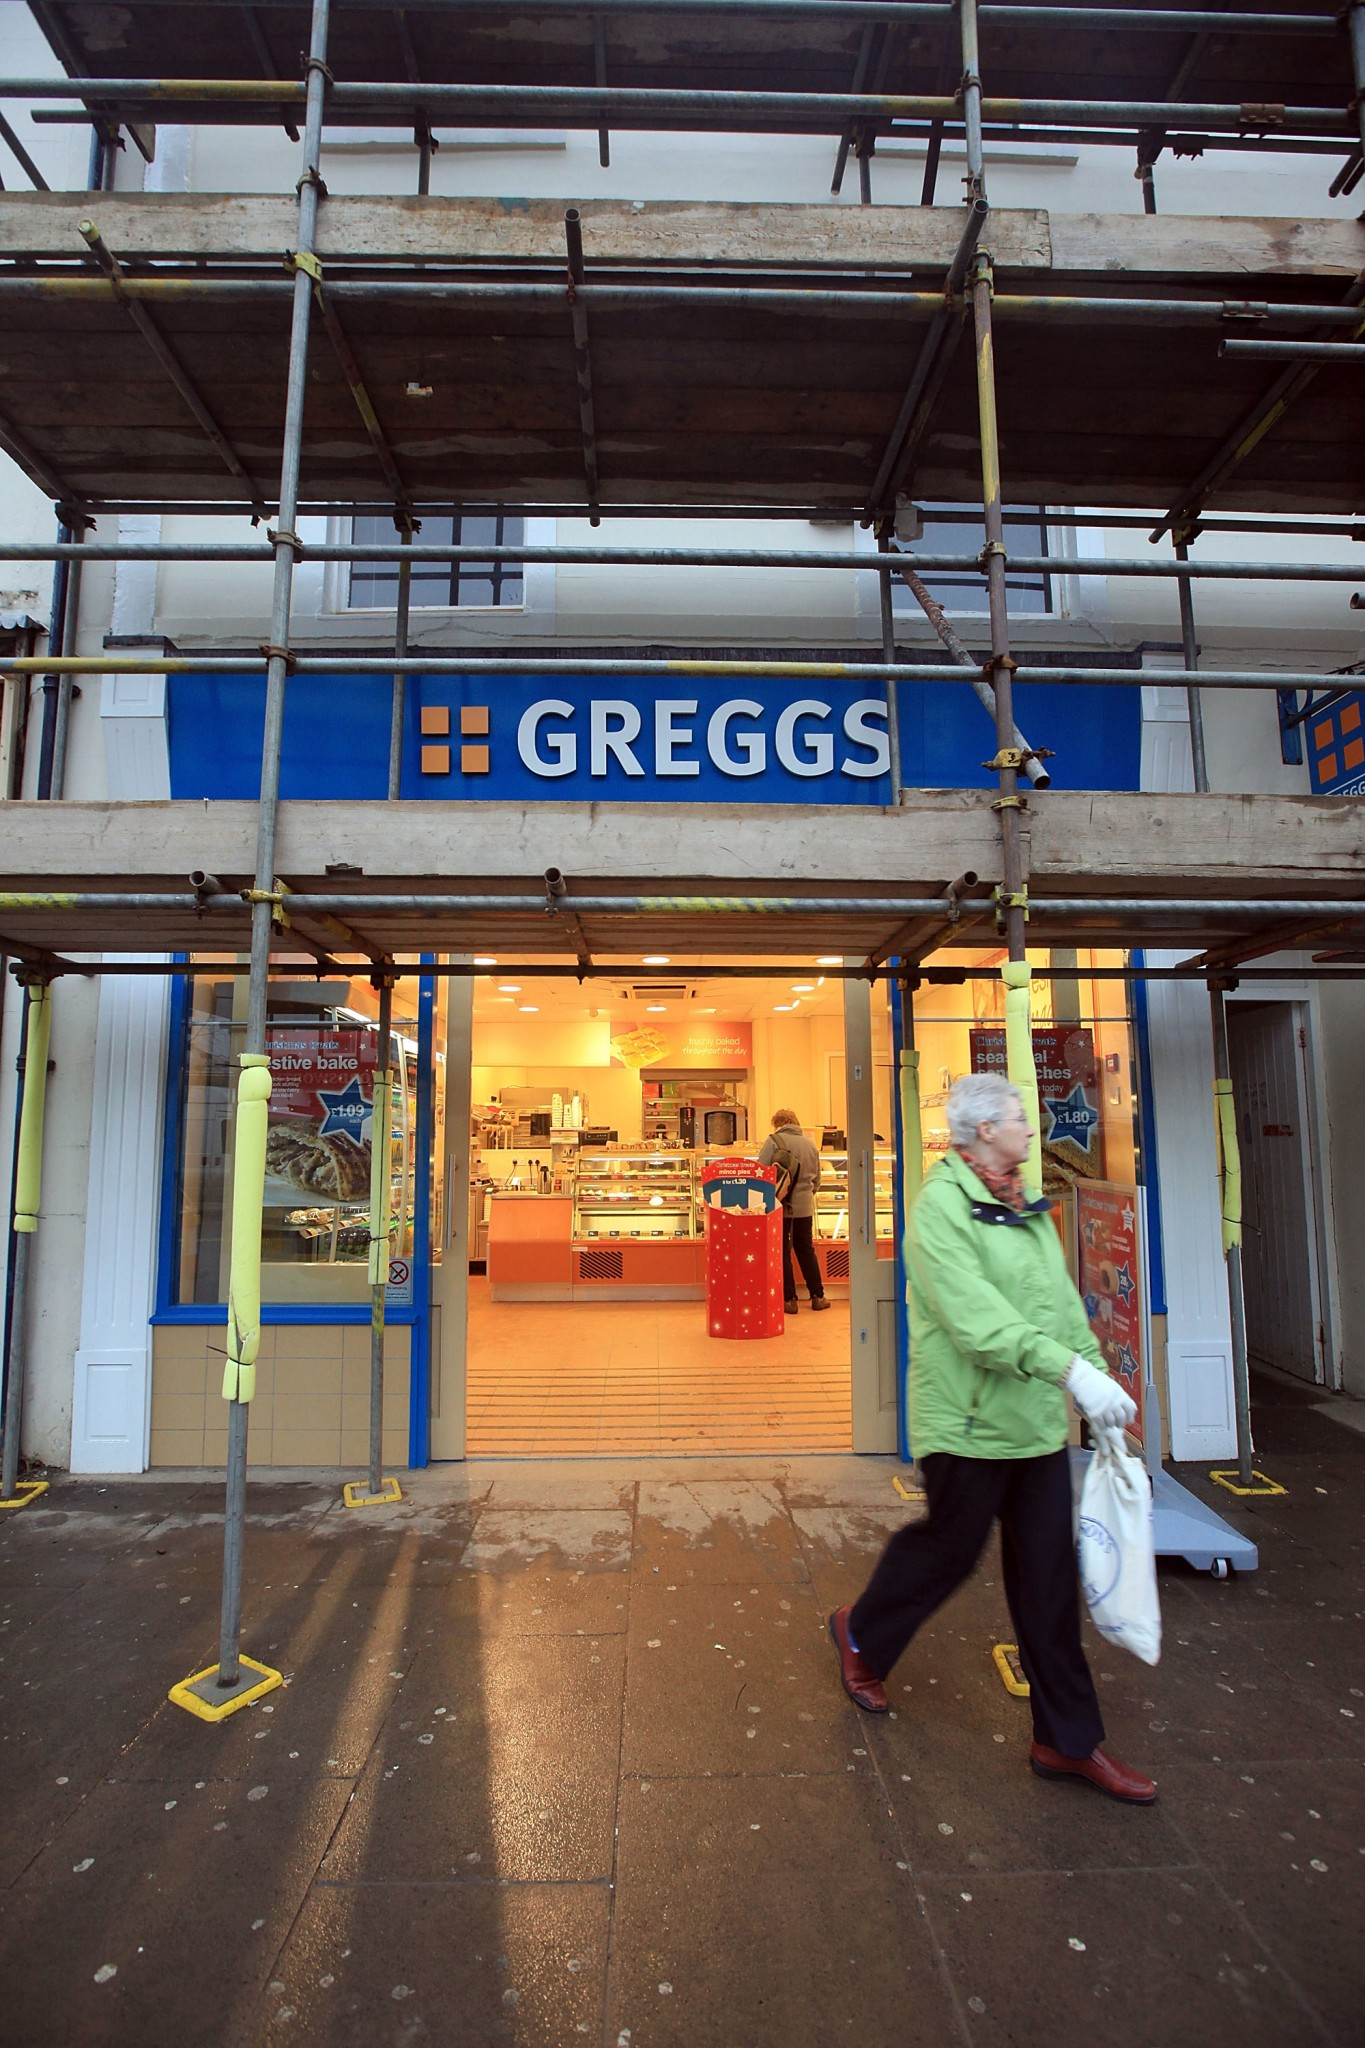 A branch of Greggs.